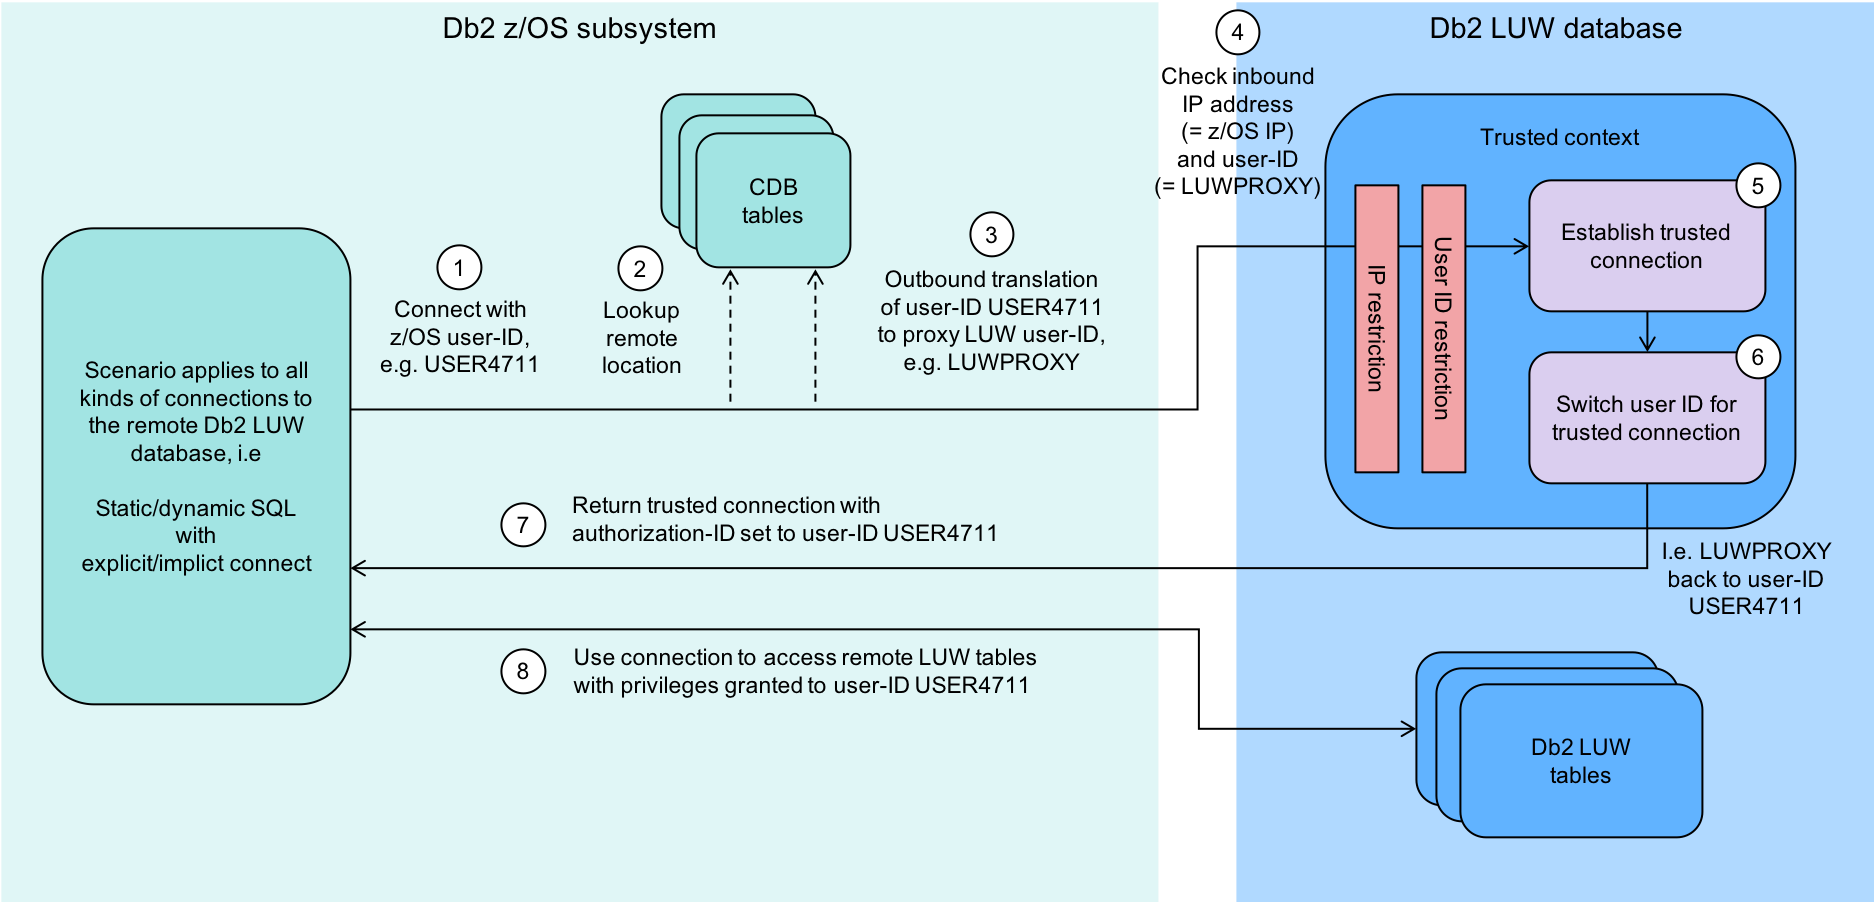 Figure 1. Db2 z/OS to Db2 LUW Remote Access Using a Trusted Context Flow Chart